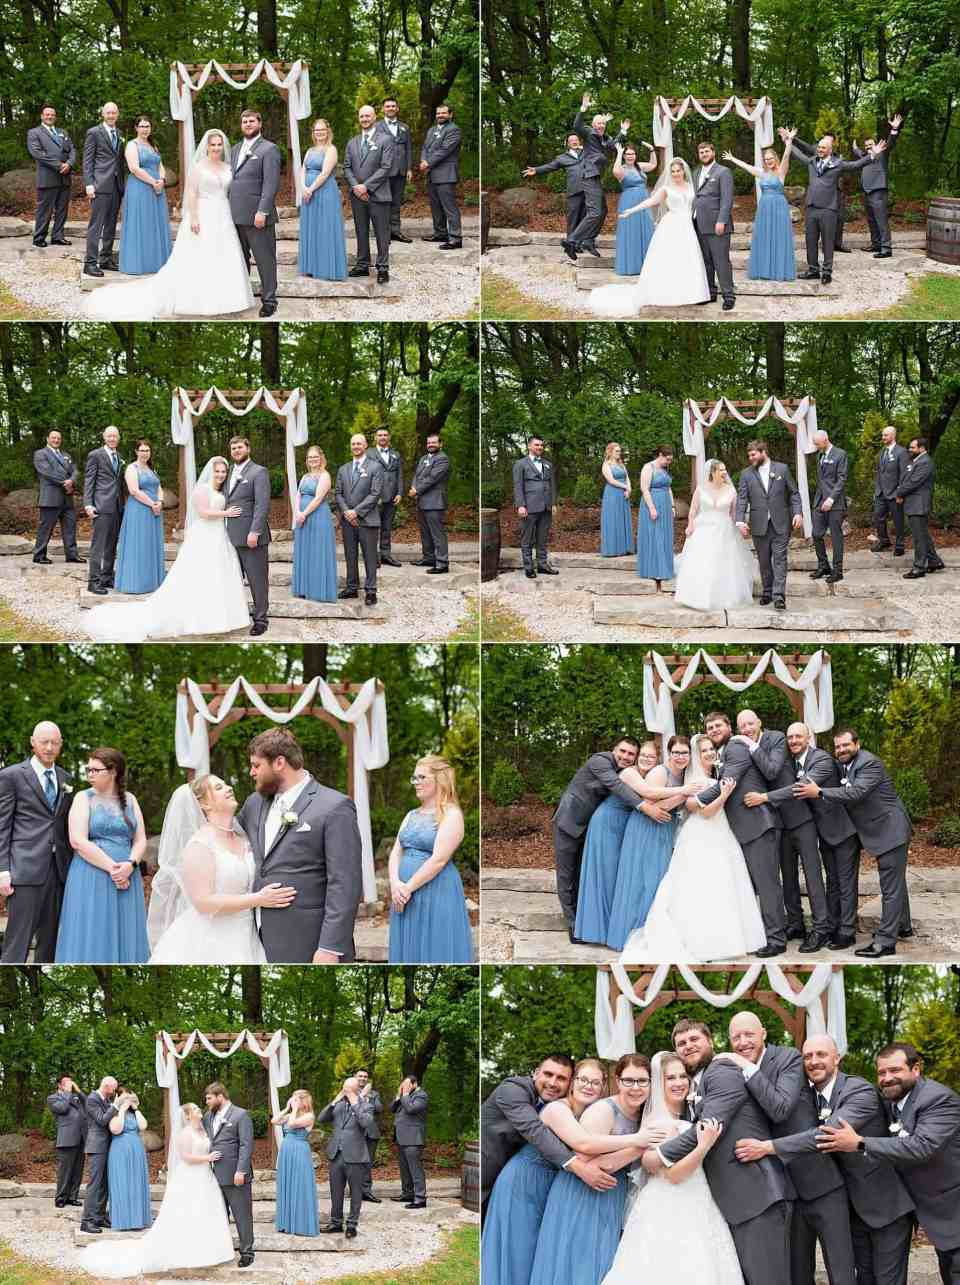 Bridal Party Portraits at Terrace 167 in Richfield, WI